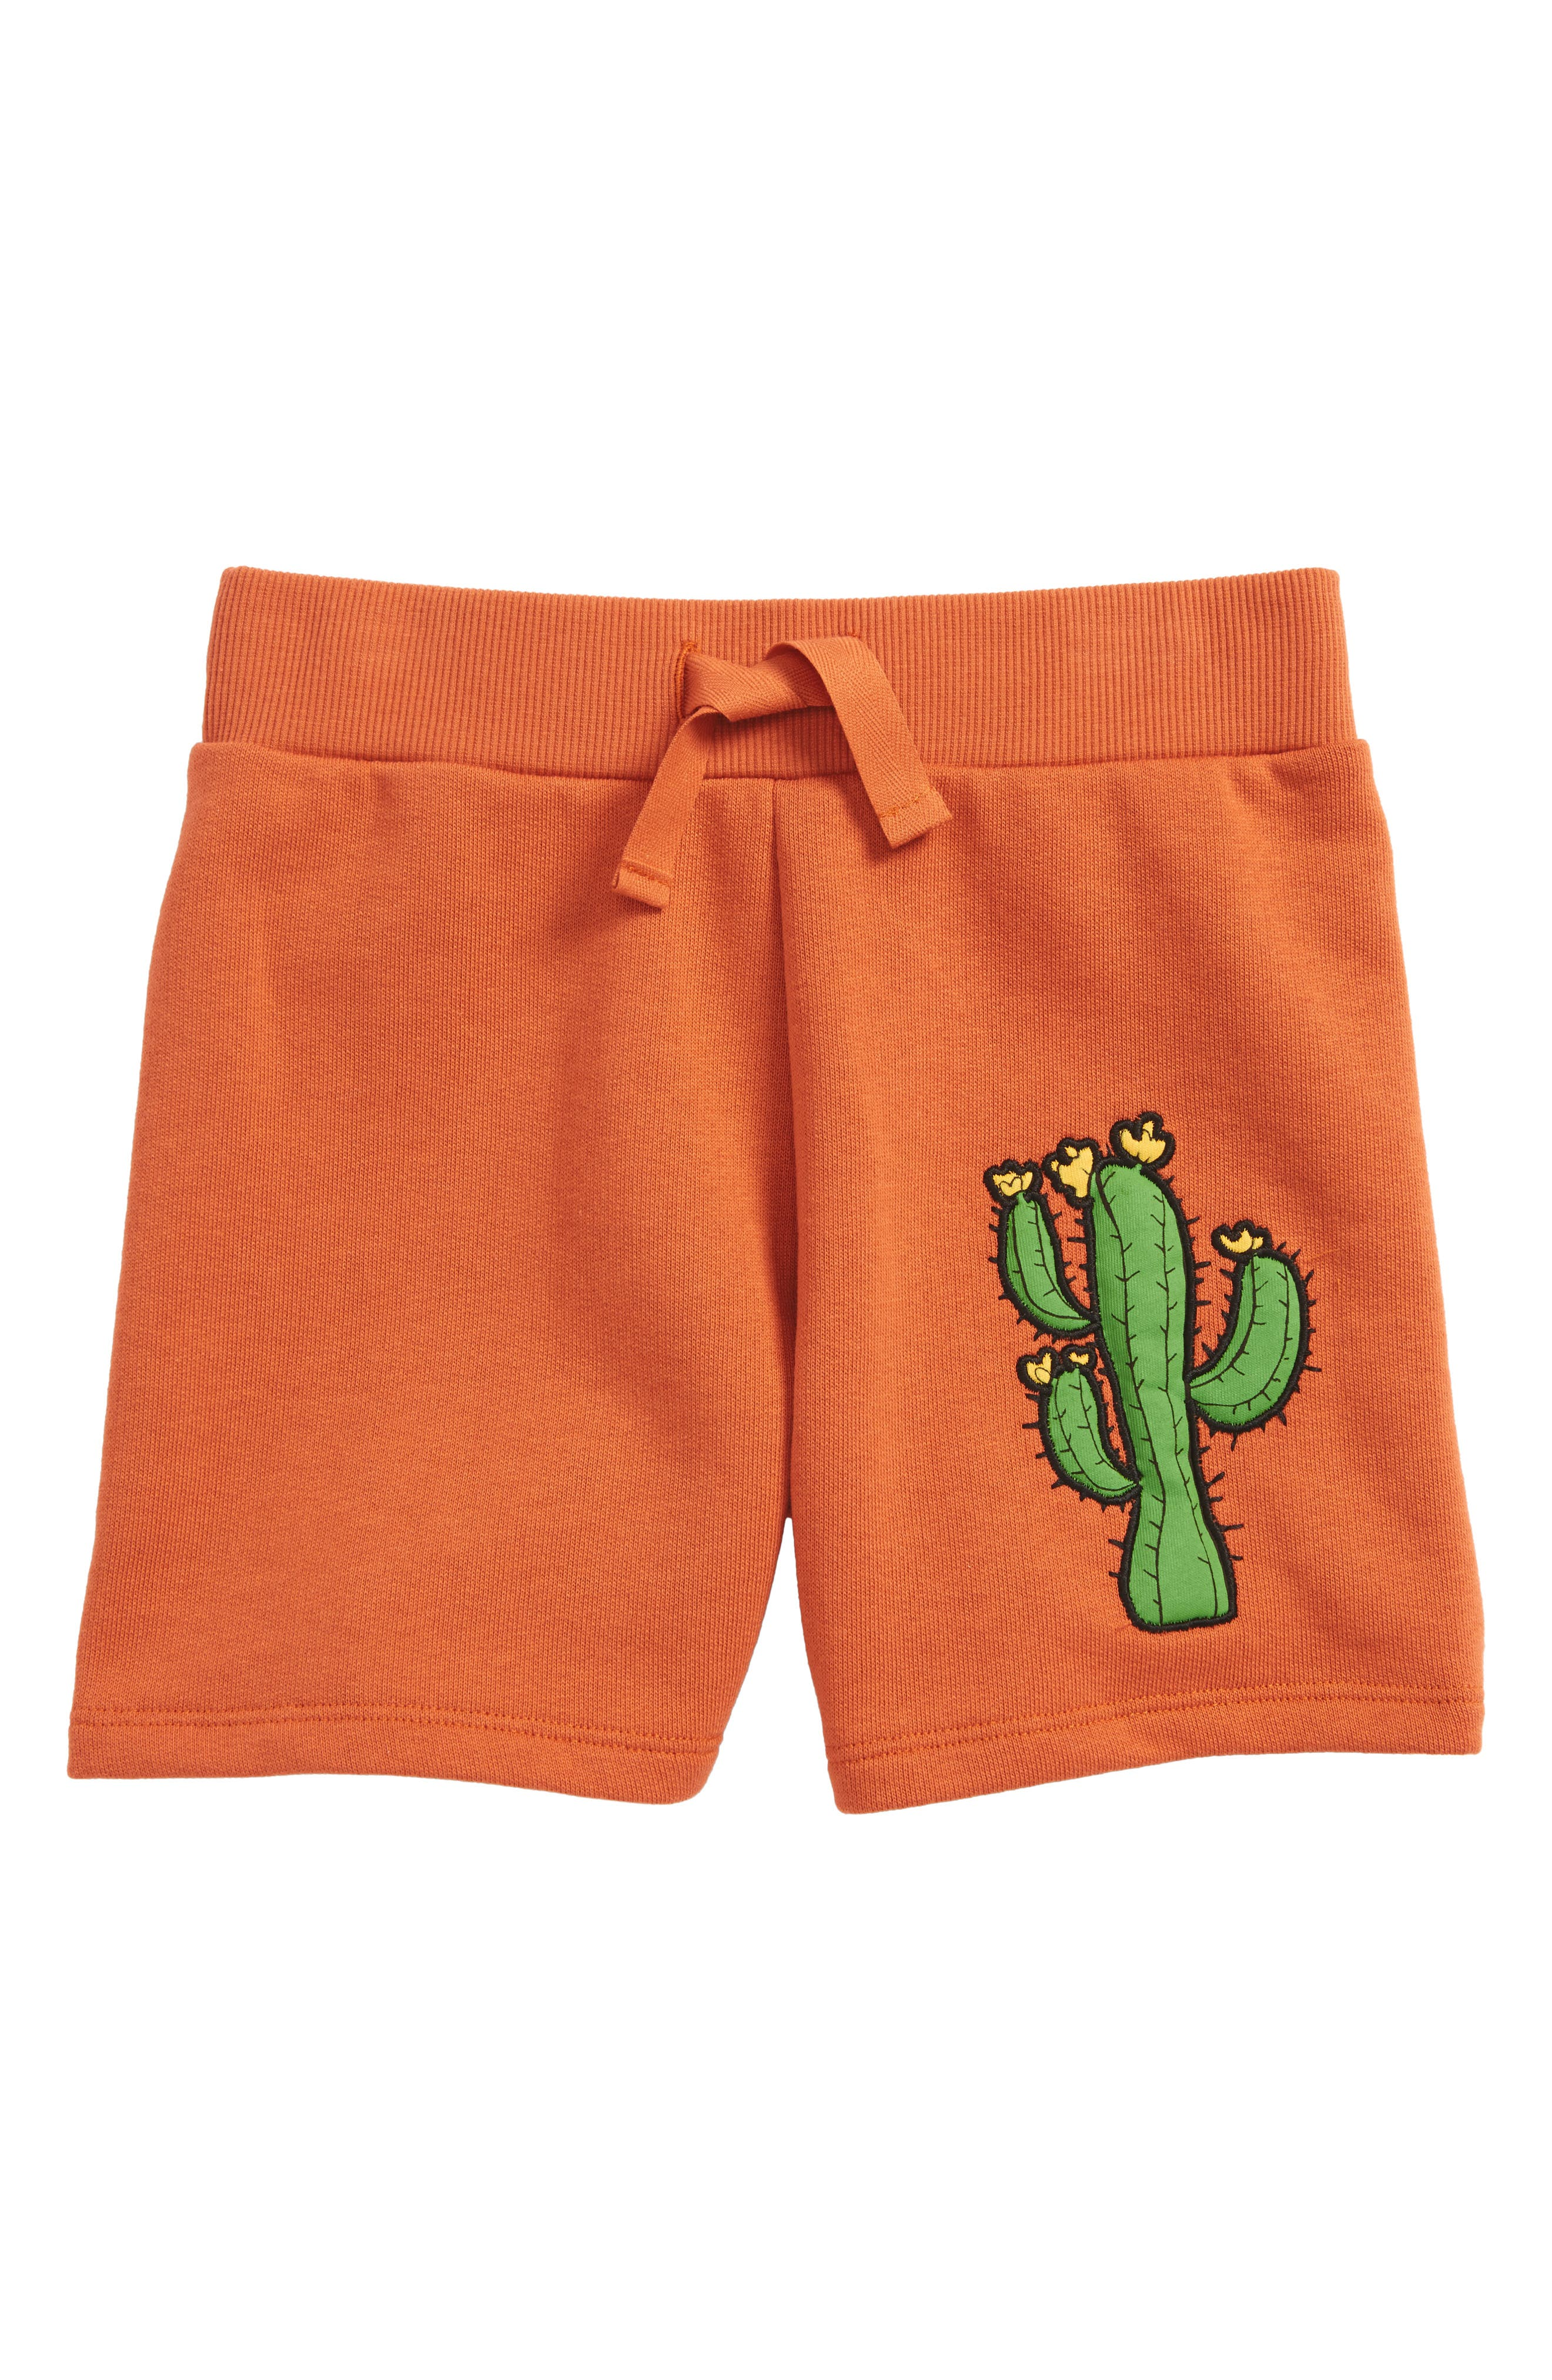 Donkey & Cactus Appliqué Organic Cotton Shorts,                         Main,                         color, 800